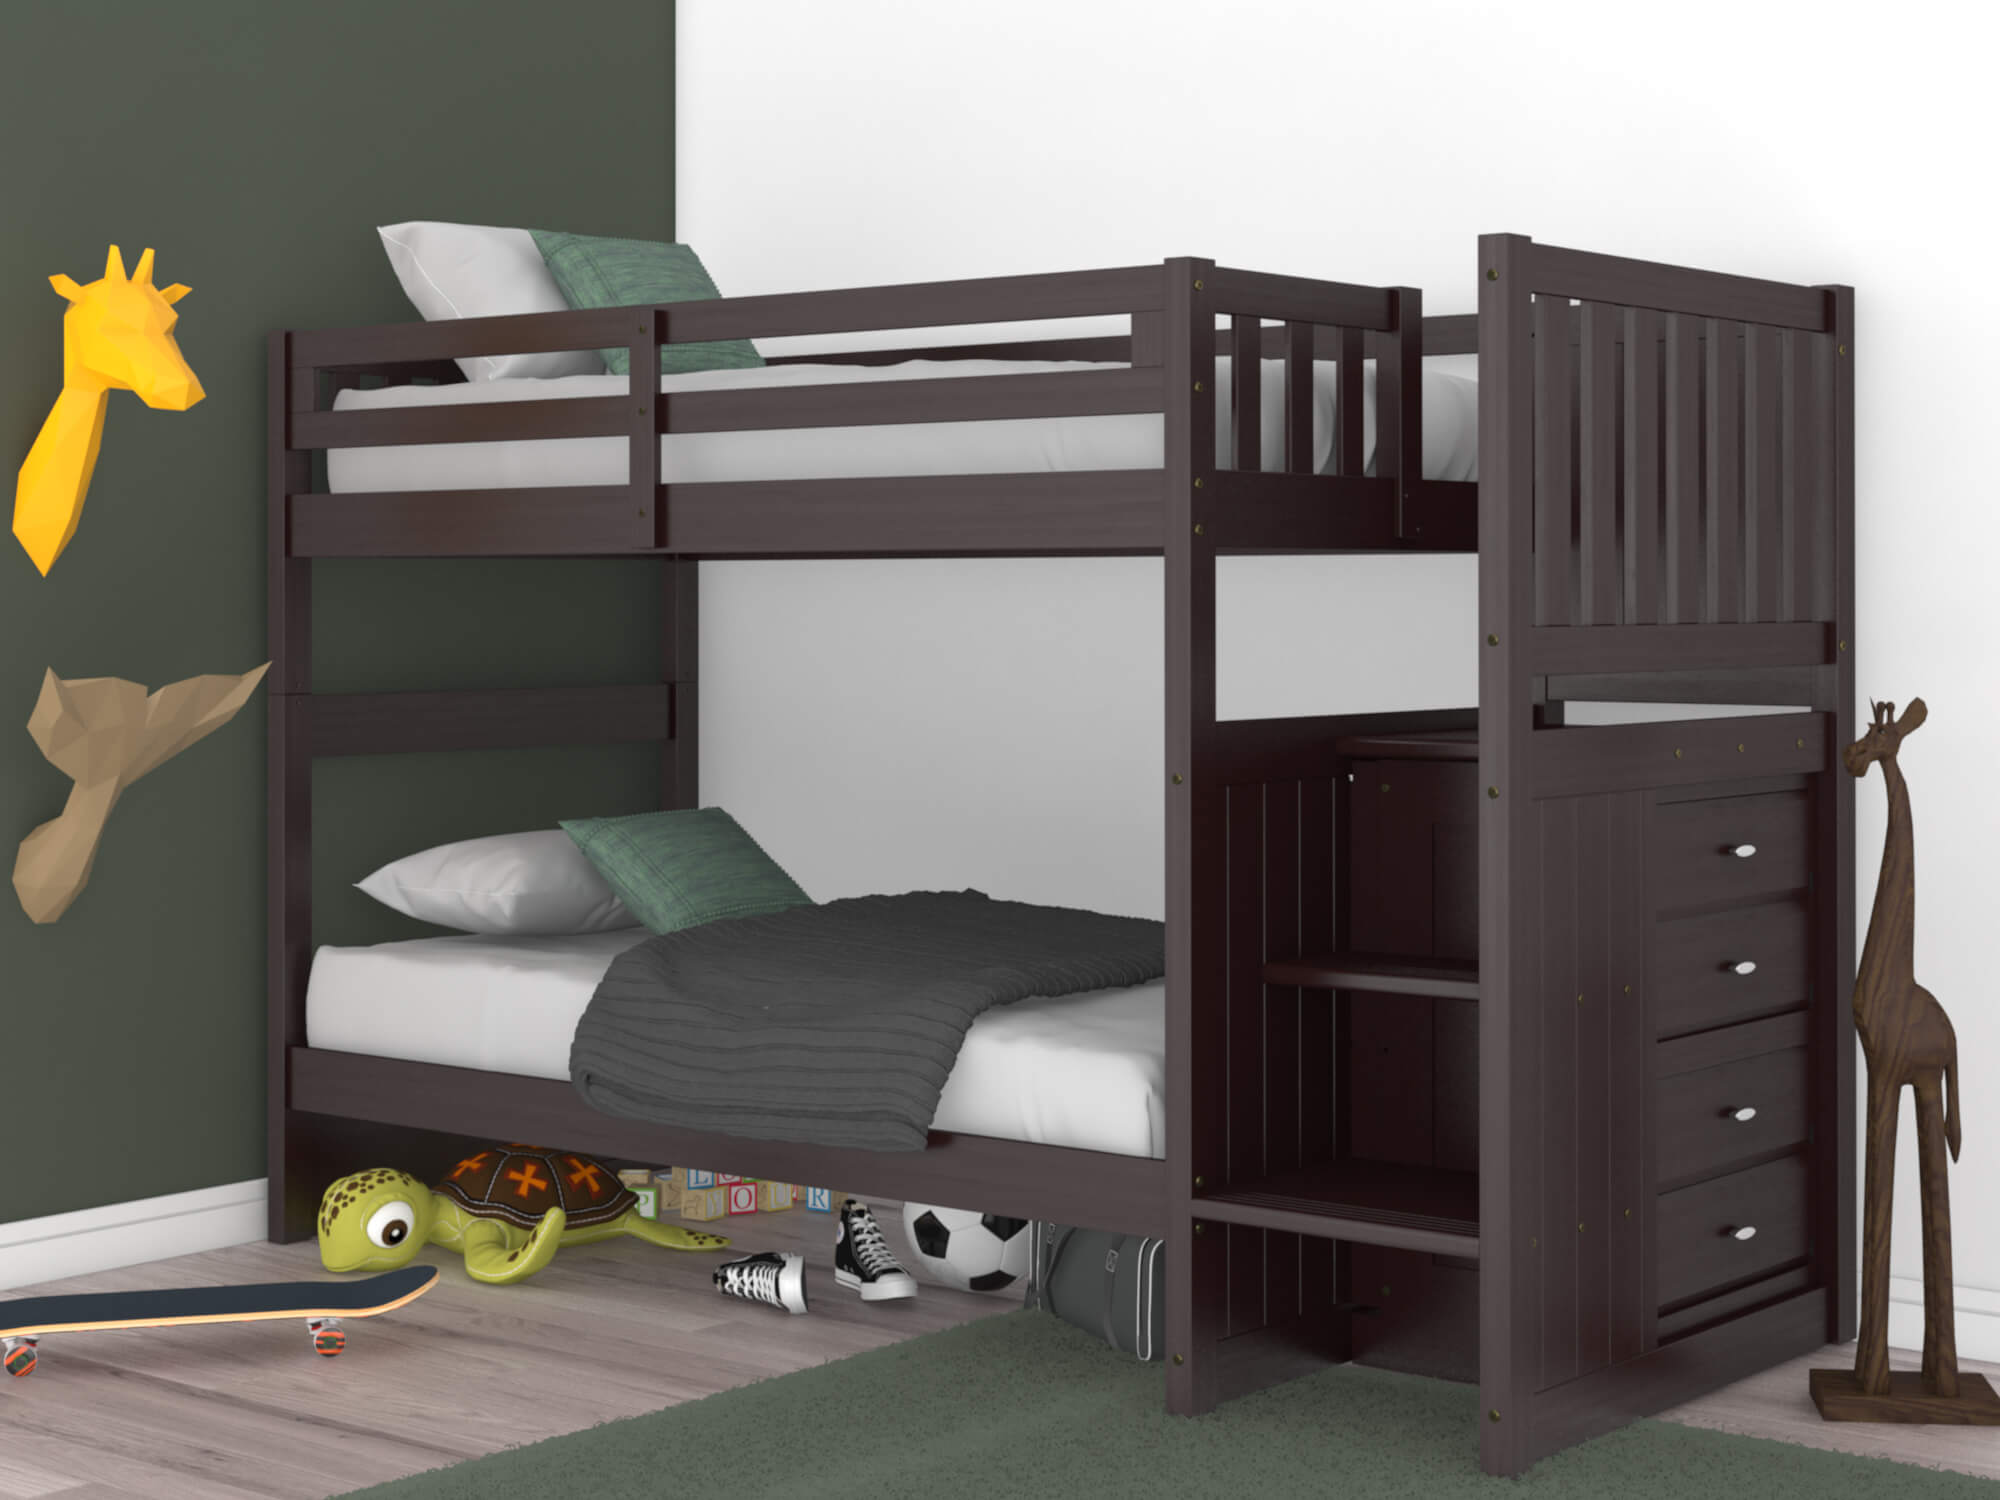 Espresso Twin Twin Staircase Bunk Bed All American Furniture Buy 4 Less Open To Public